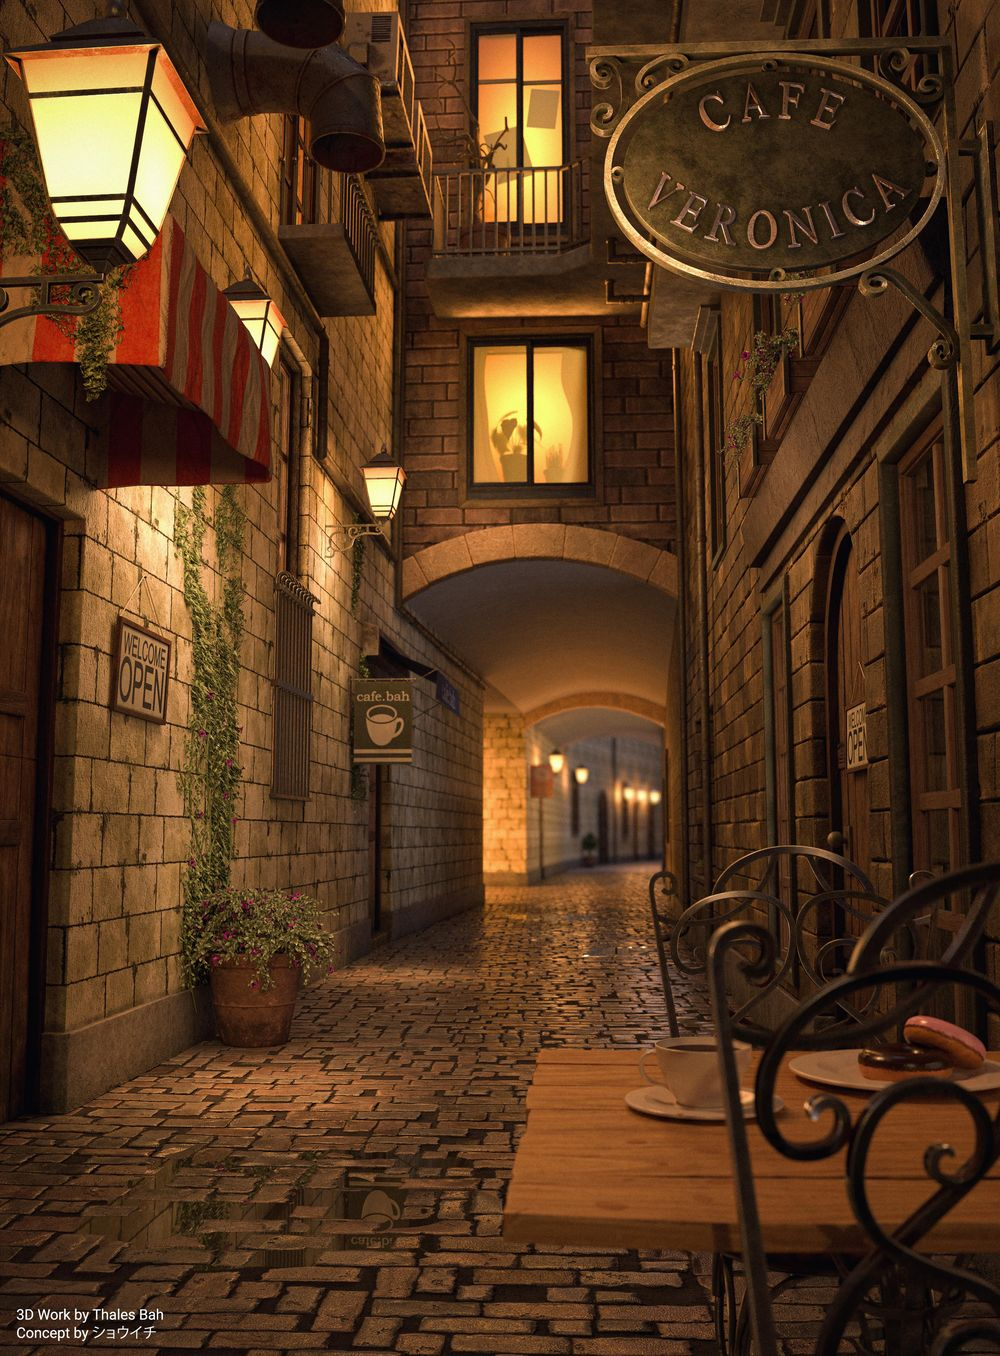 Coffee Alley - image 1 - student project